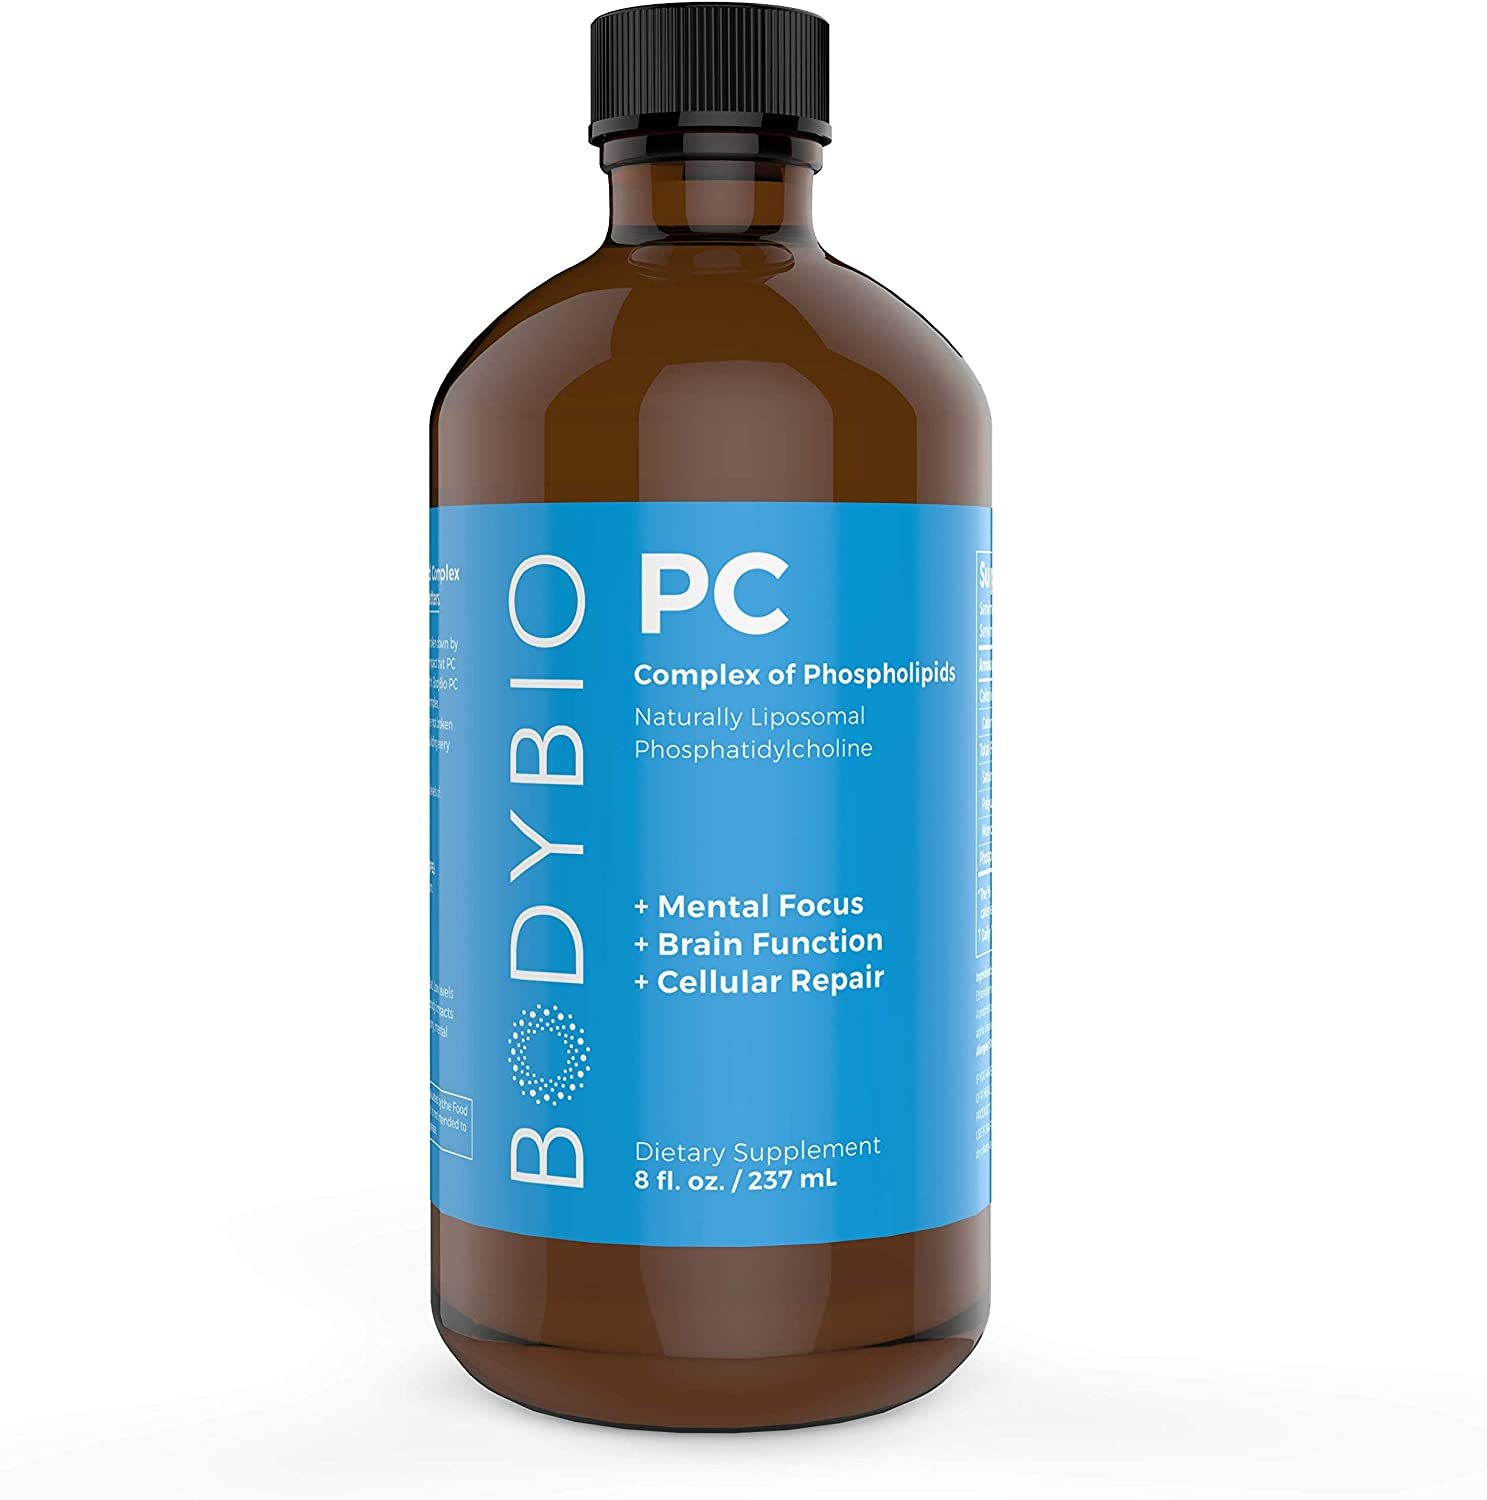 BodyBio PC Phosphatidylcholine + Phospholipids - 8 oz